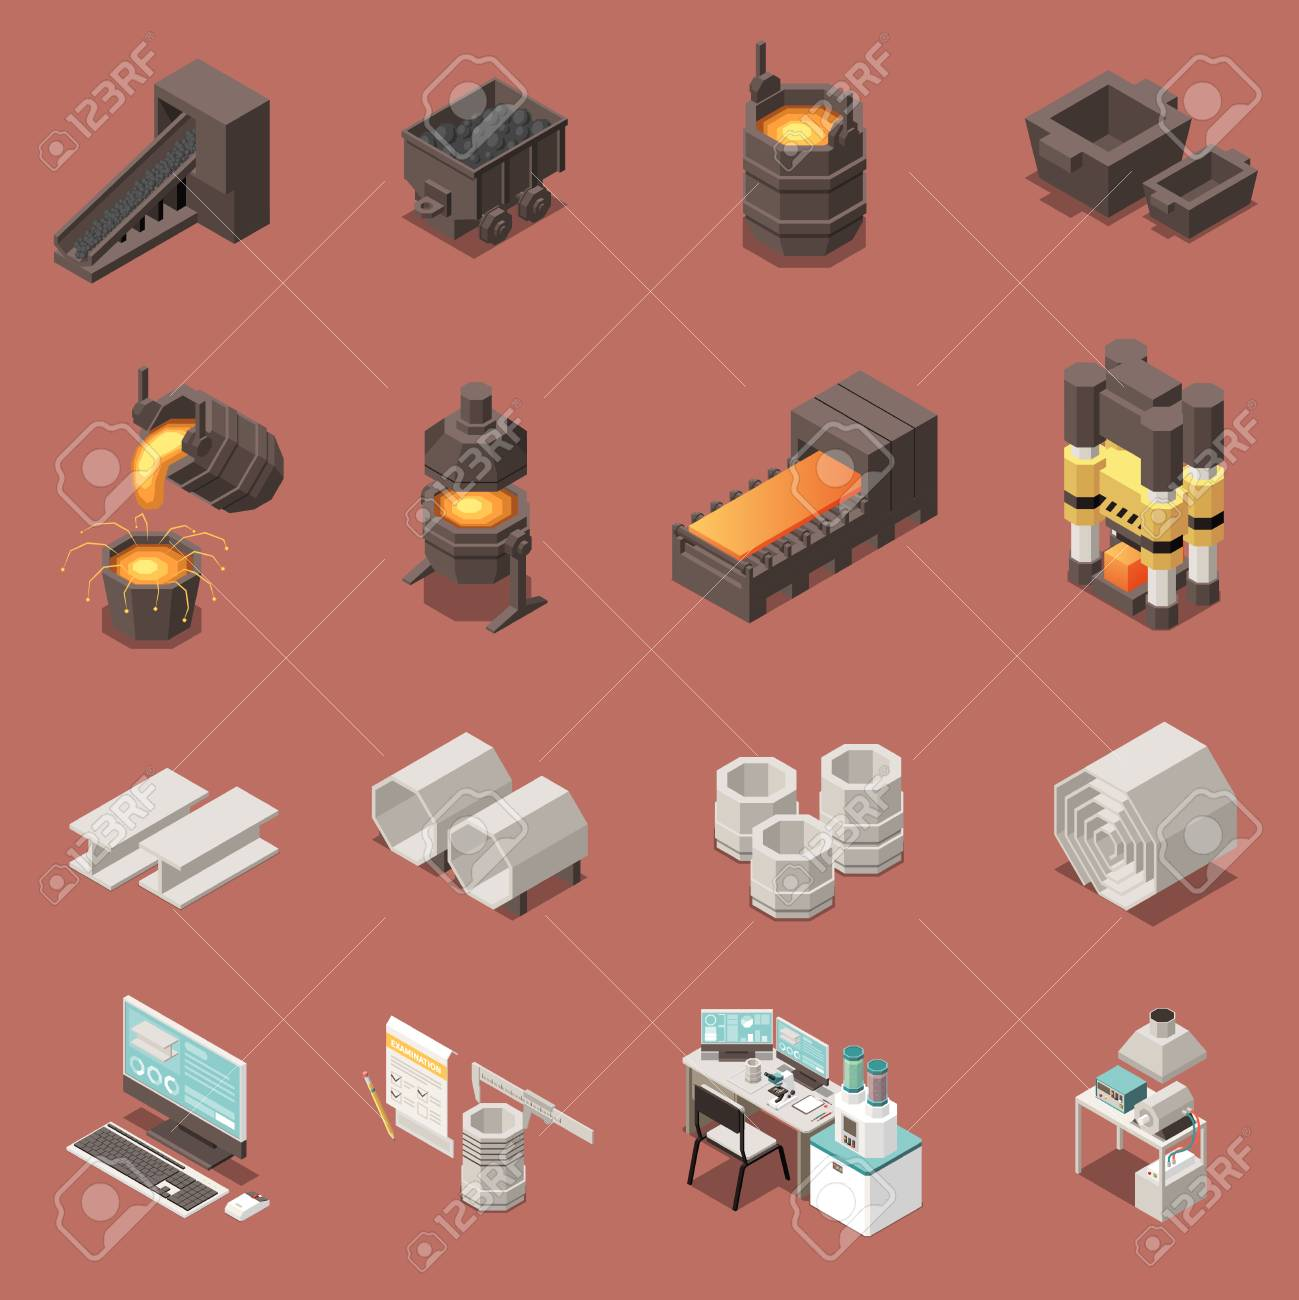 Isometric icons set with metal industry equipment 3d isolated vector illustration - 123074122